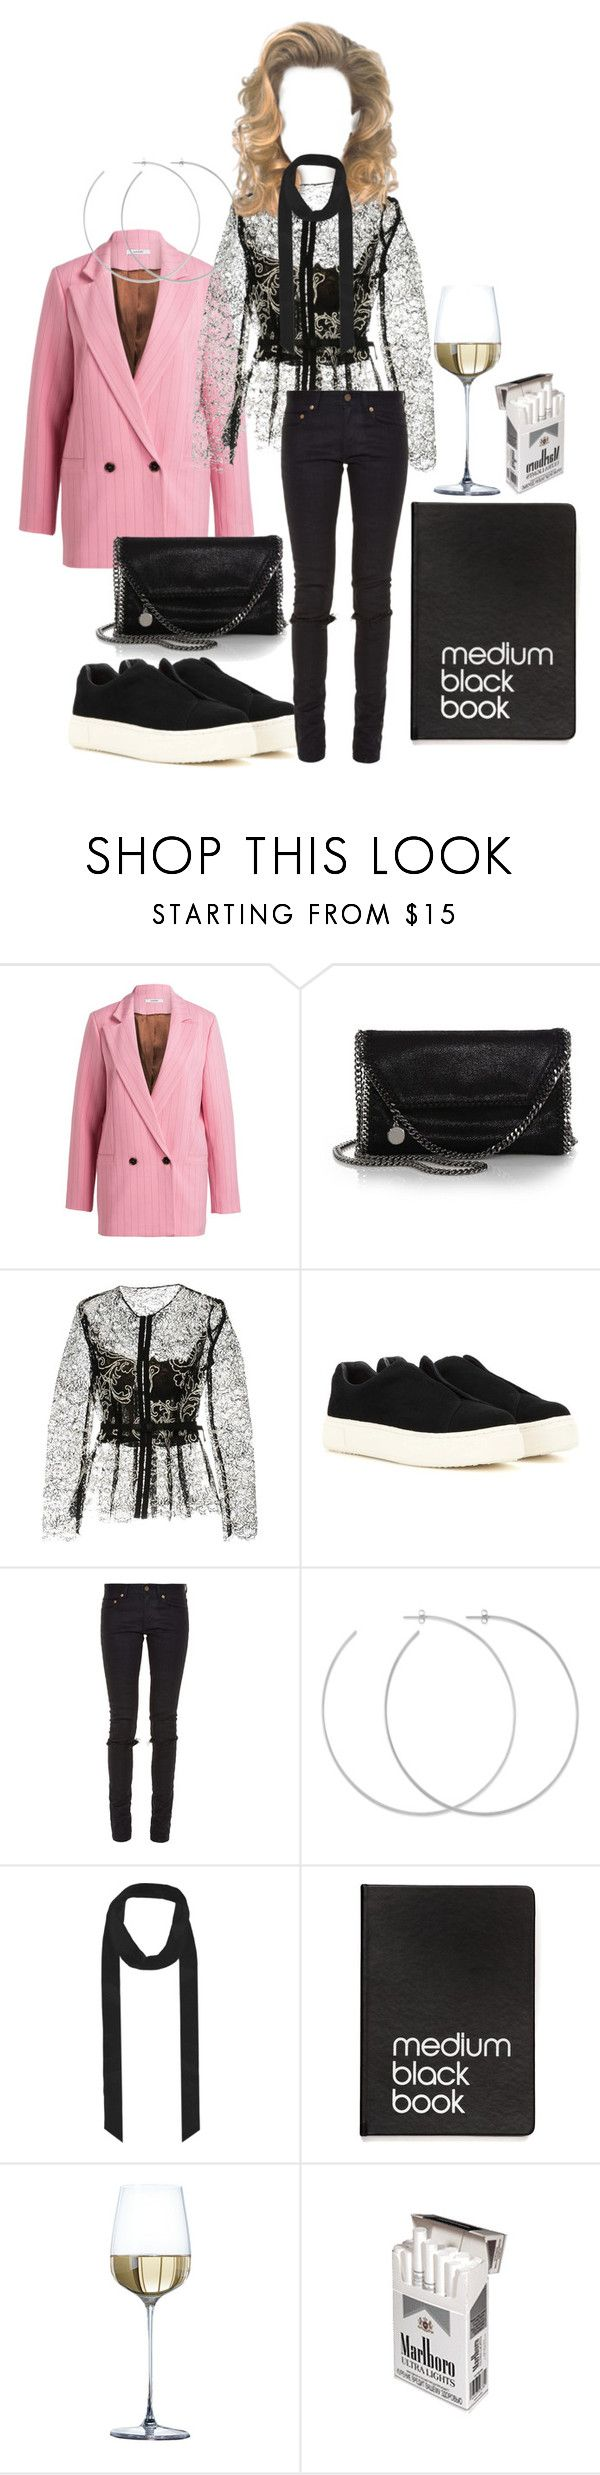 """Untitled #225"" by fashiondisguise on Polyvore featuring STELLA McCARTNEY, Oscar de la Renta, Eytys, Yves Saint Laurent, Allison Bryan and Dinks"